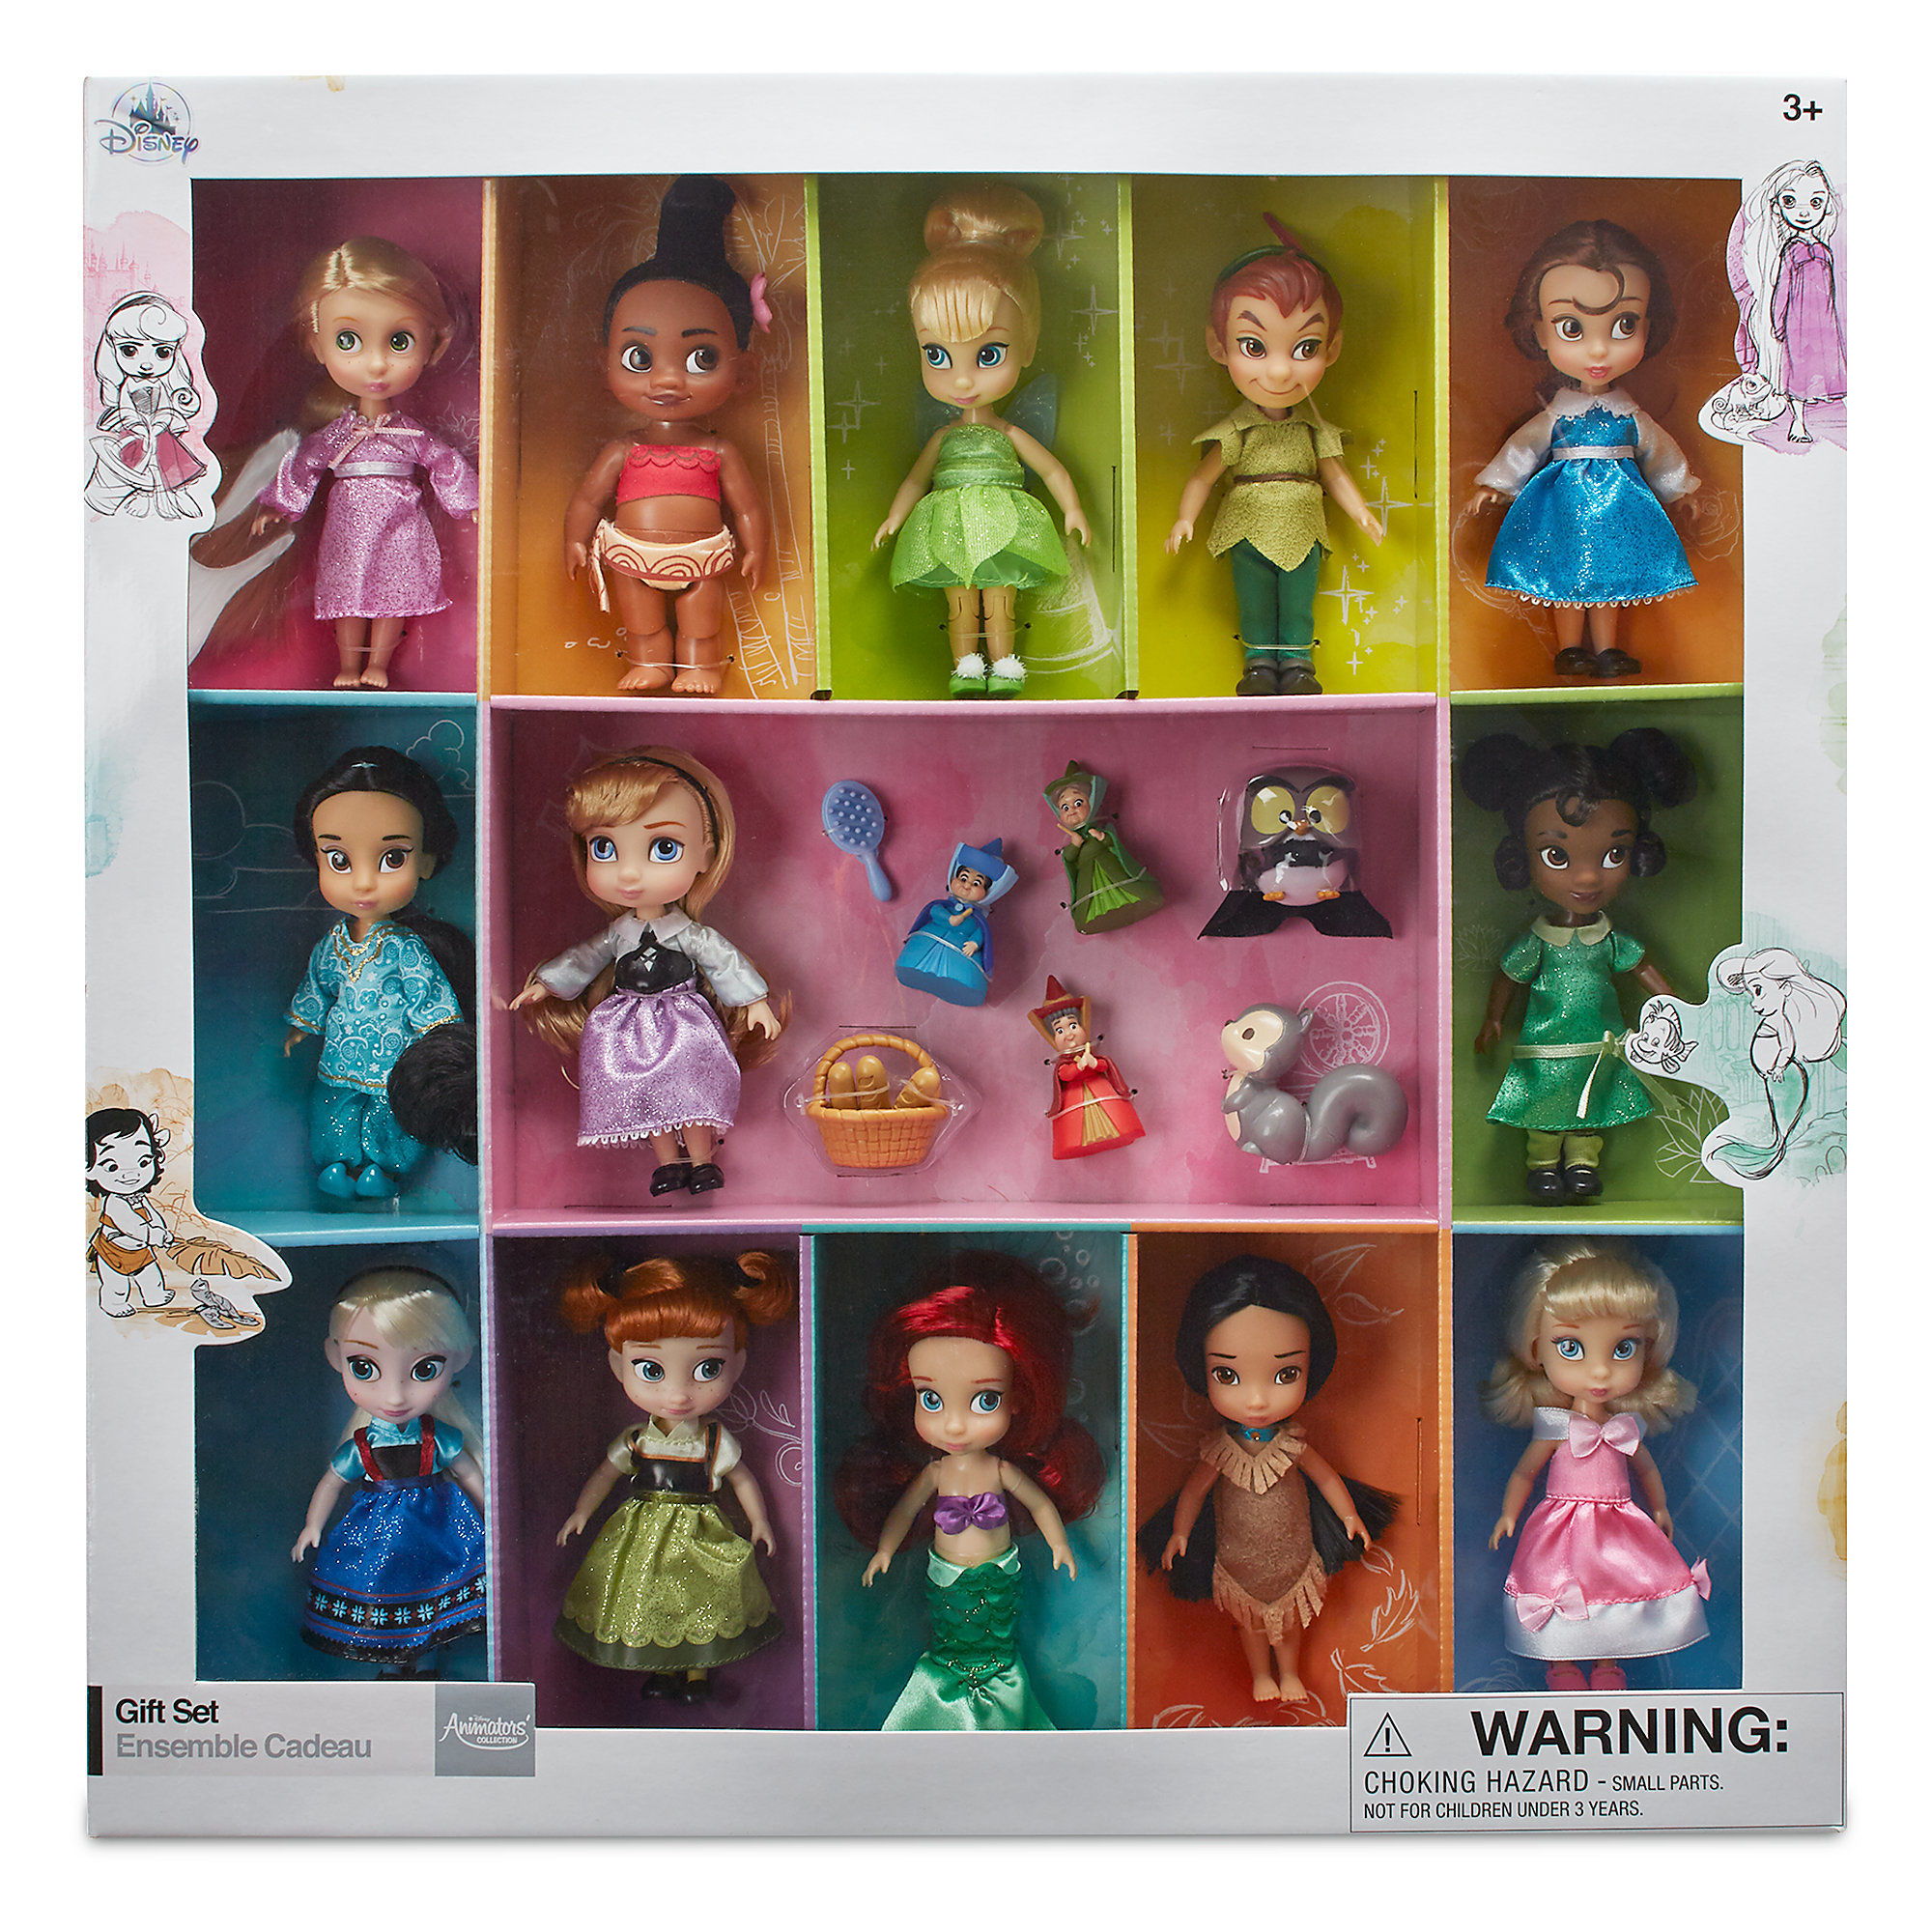 Disney Animators Collection Mini Doll Gift Set Out Now